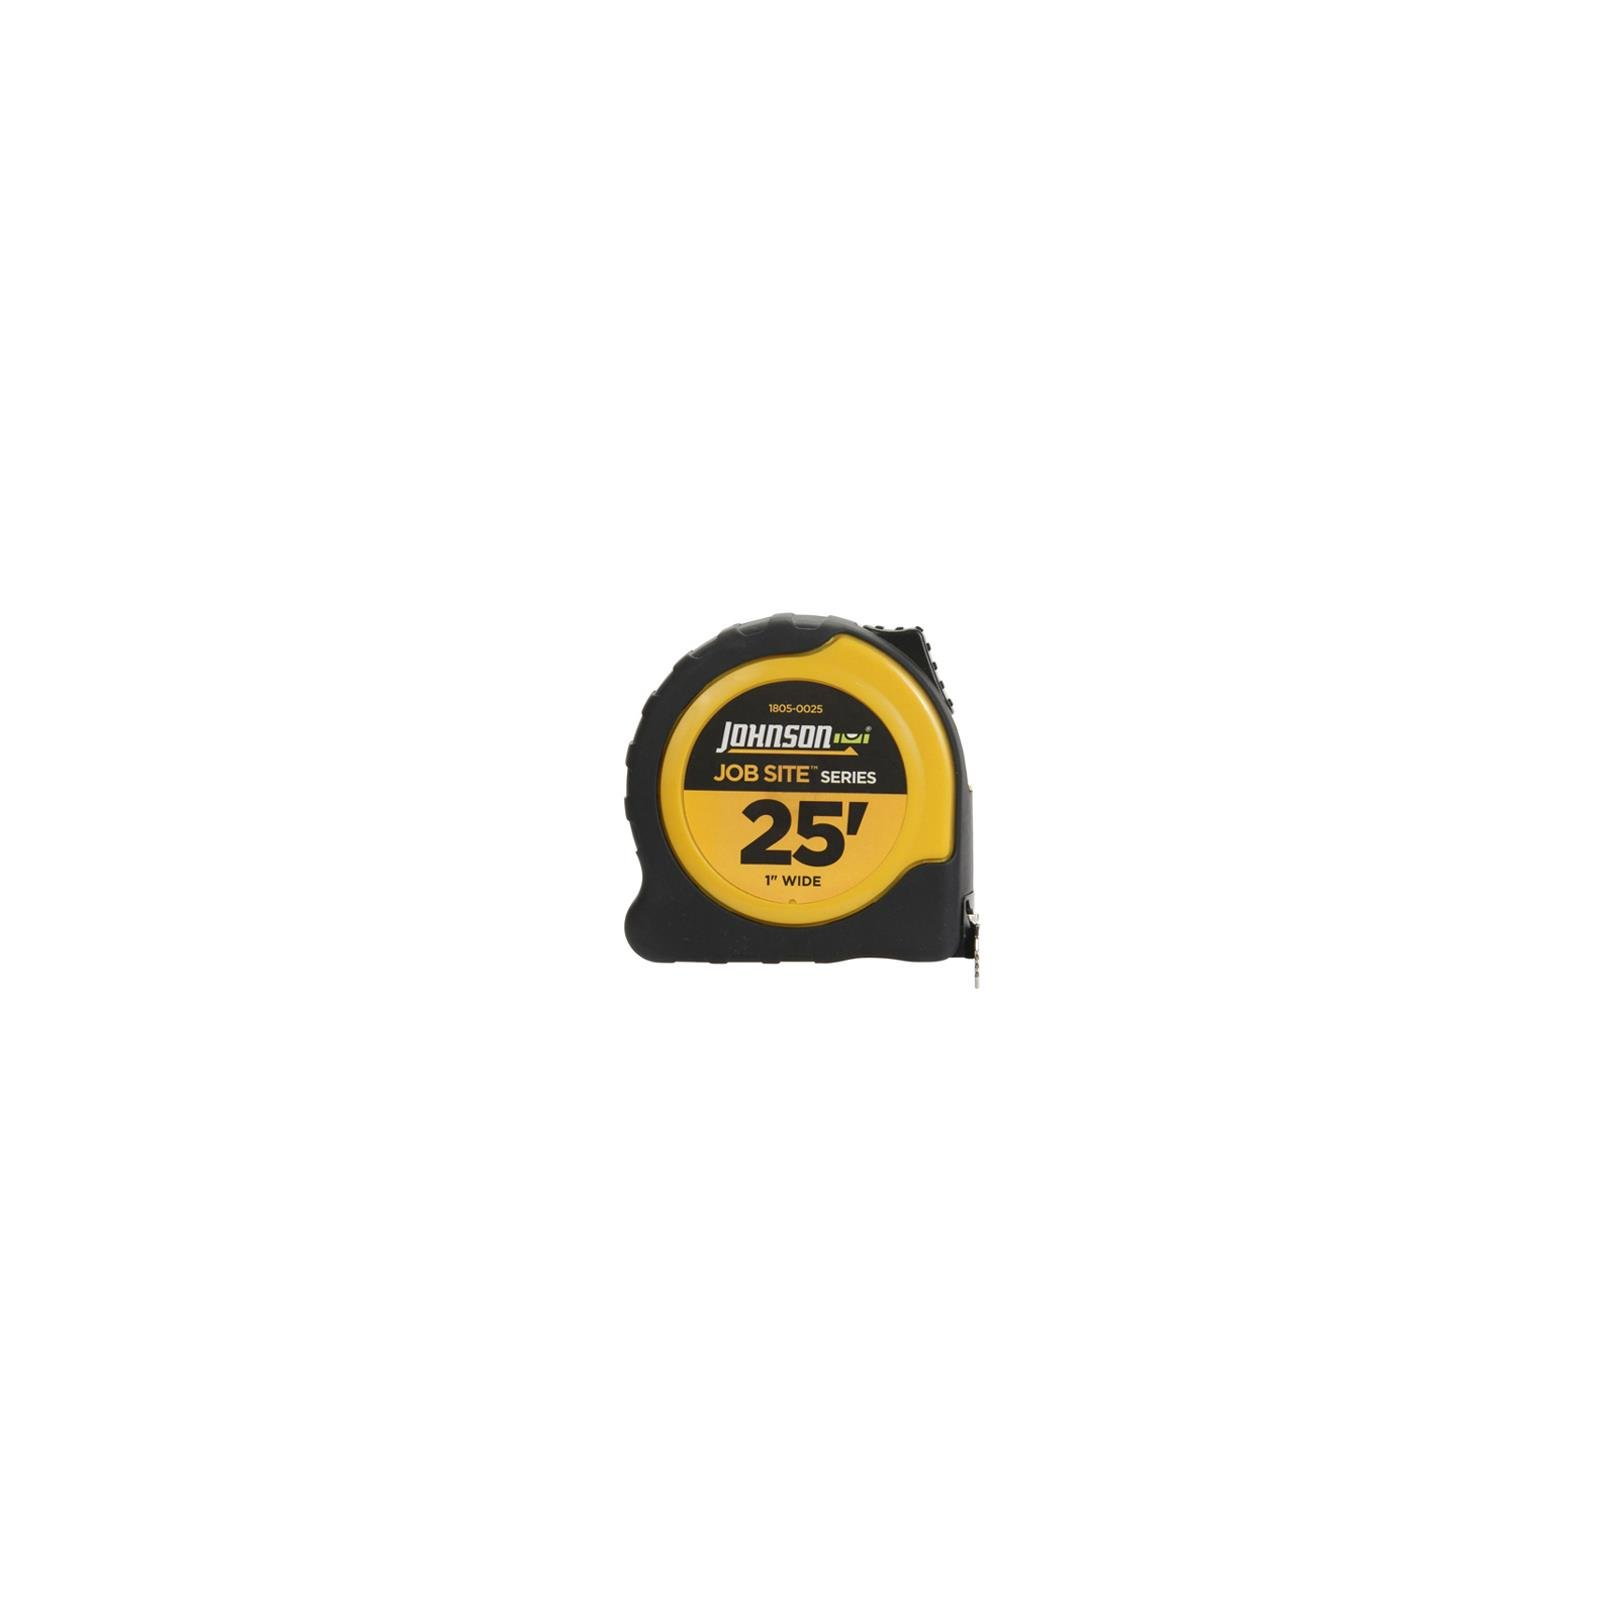 Johnson Level & Tool 1805-0025 Job Site Power Tape Measure, Nylon-Coated Blade/Rubberized Case, 1-In. x 25- - Quantity 4